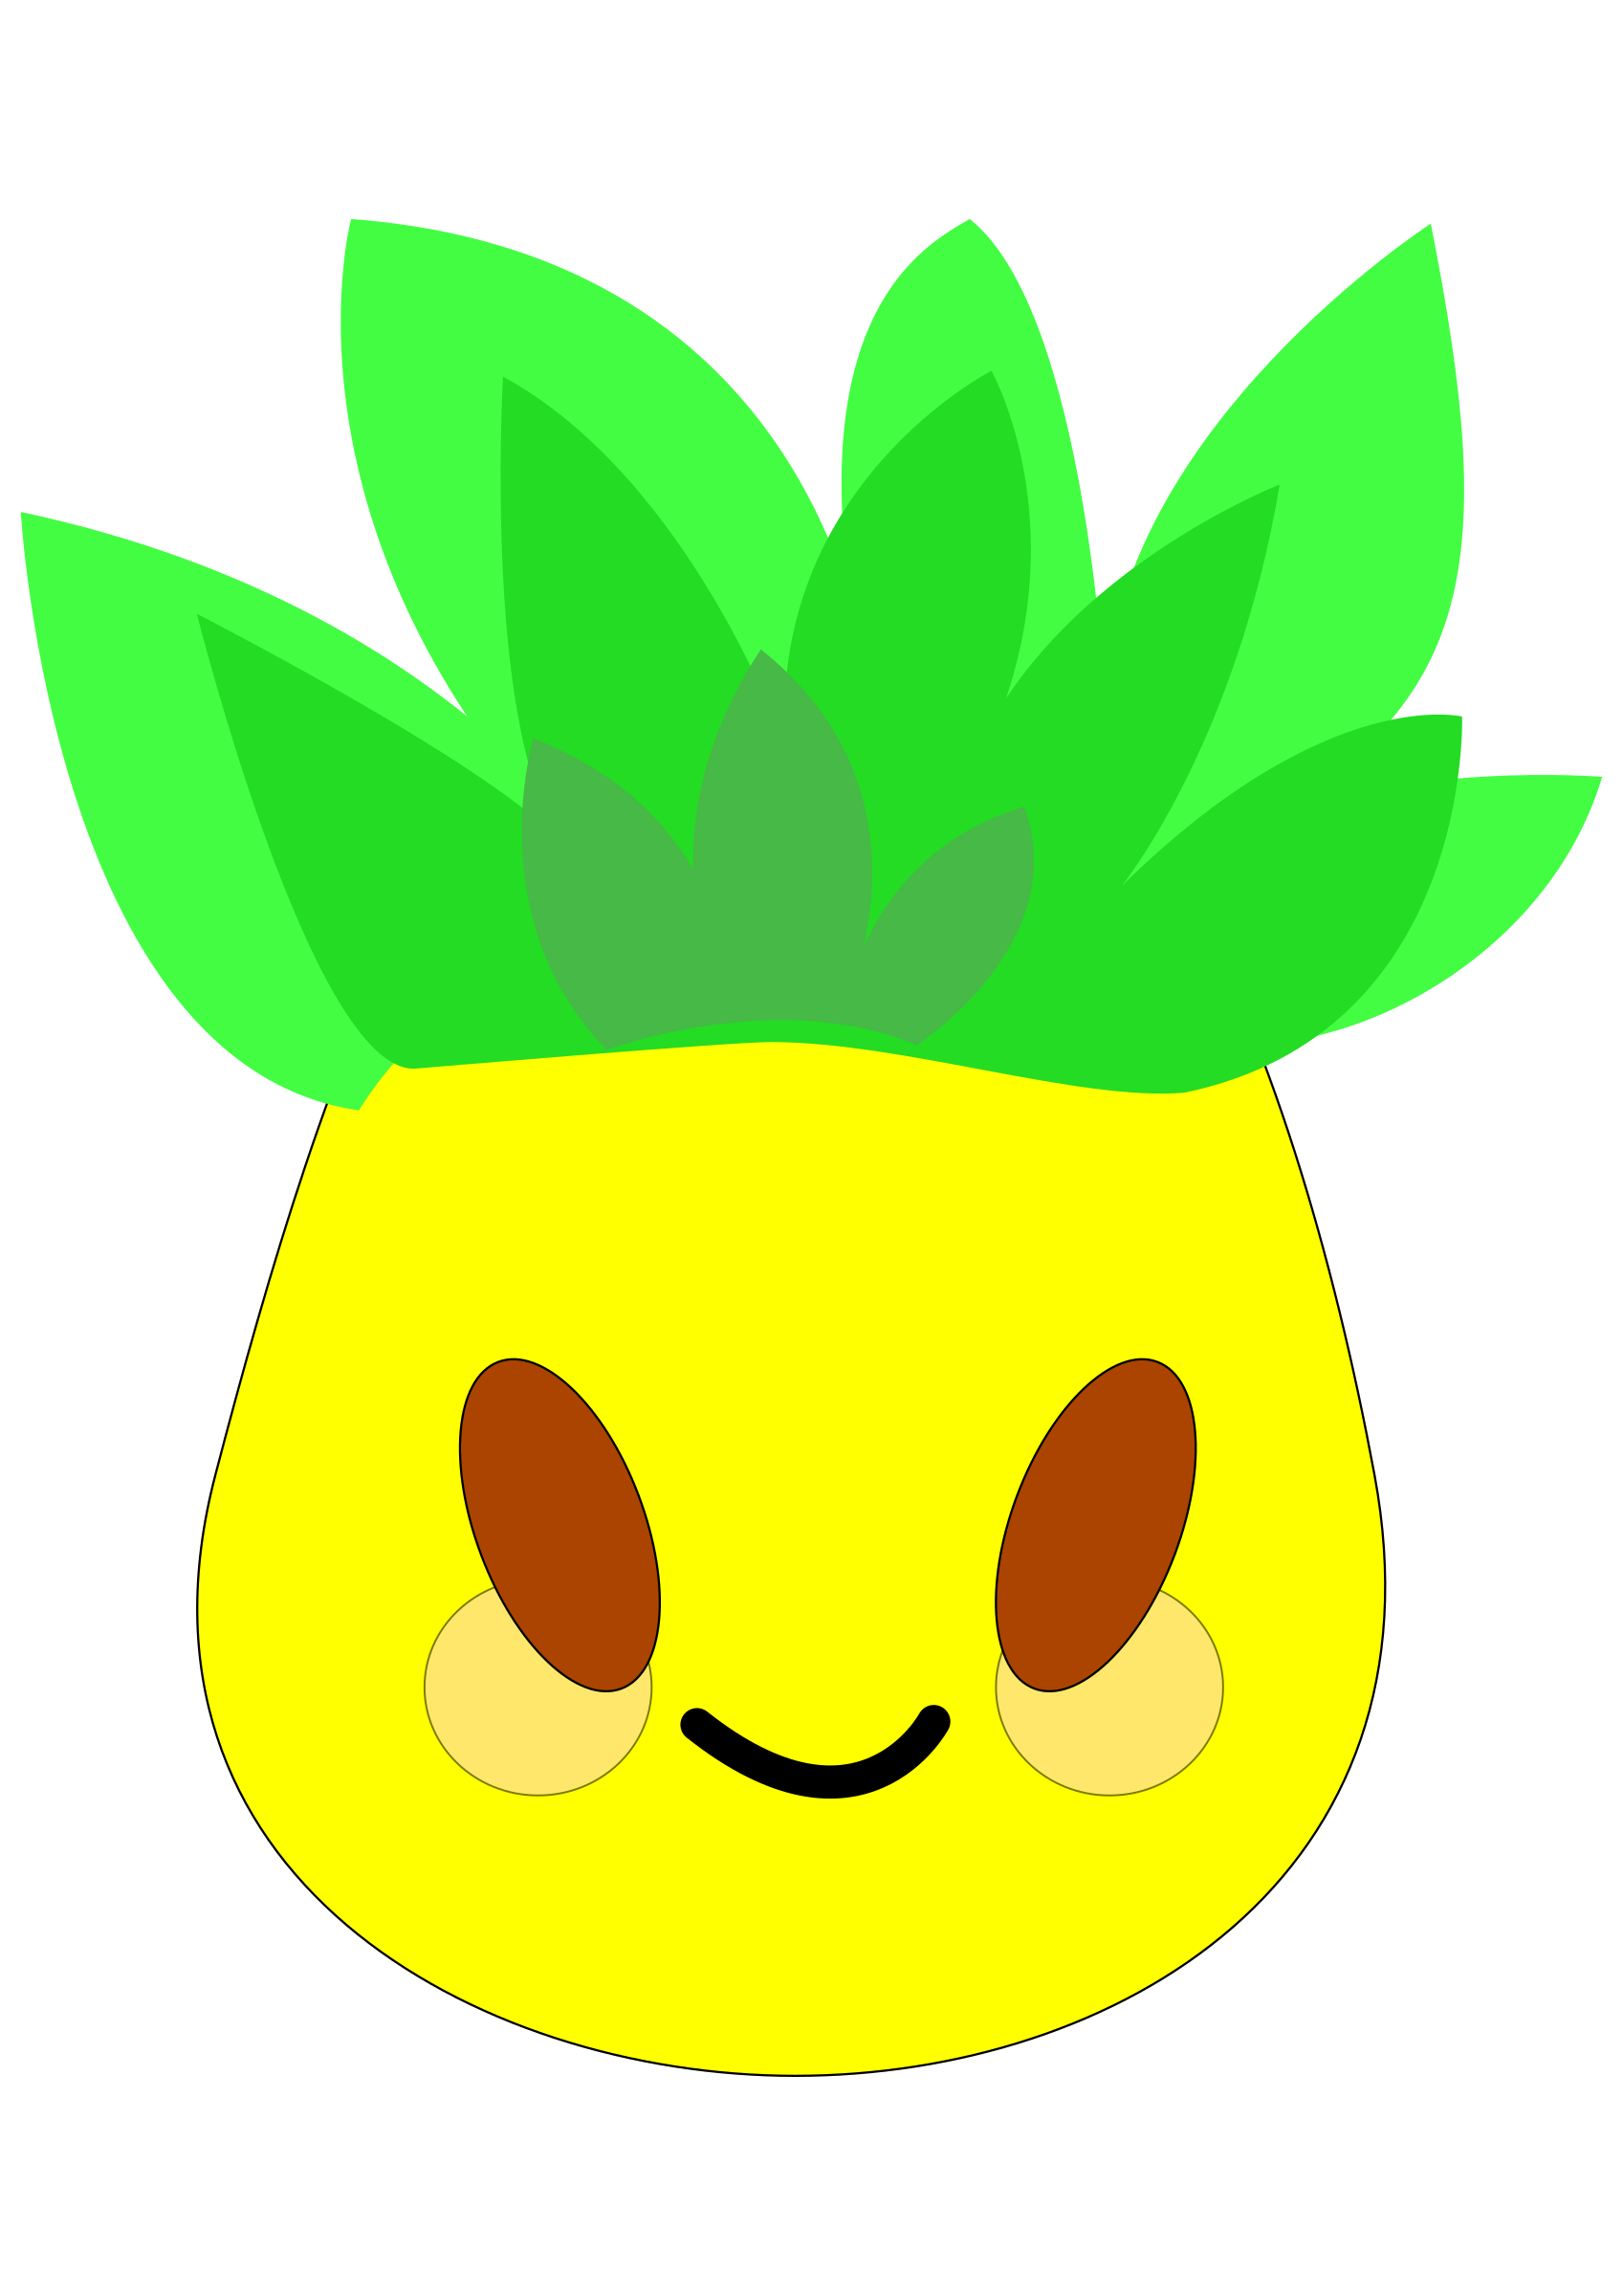 pineapple by etilletas98